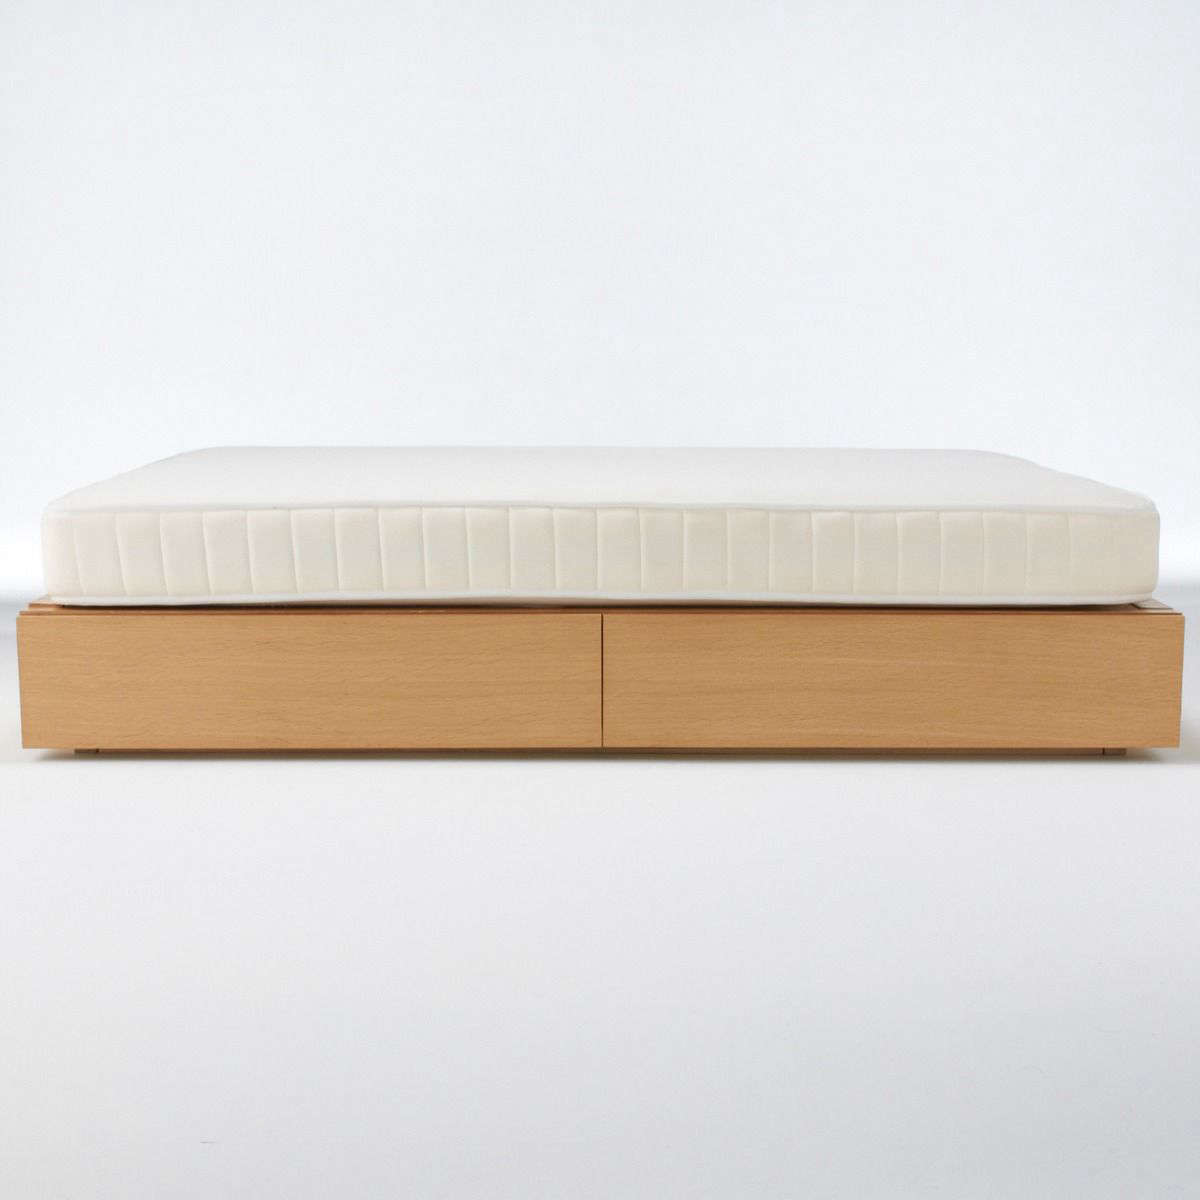 Muji's Oak Storage Bed has two large storage drawers and can be custom-built with headboard and bedside storage too (see featured image, at top); starting at $550.